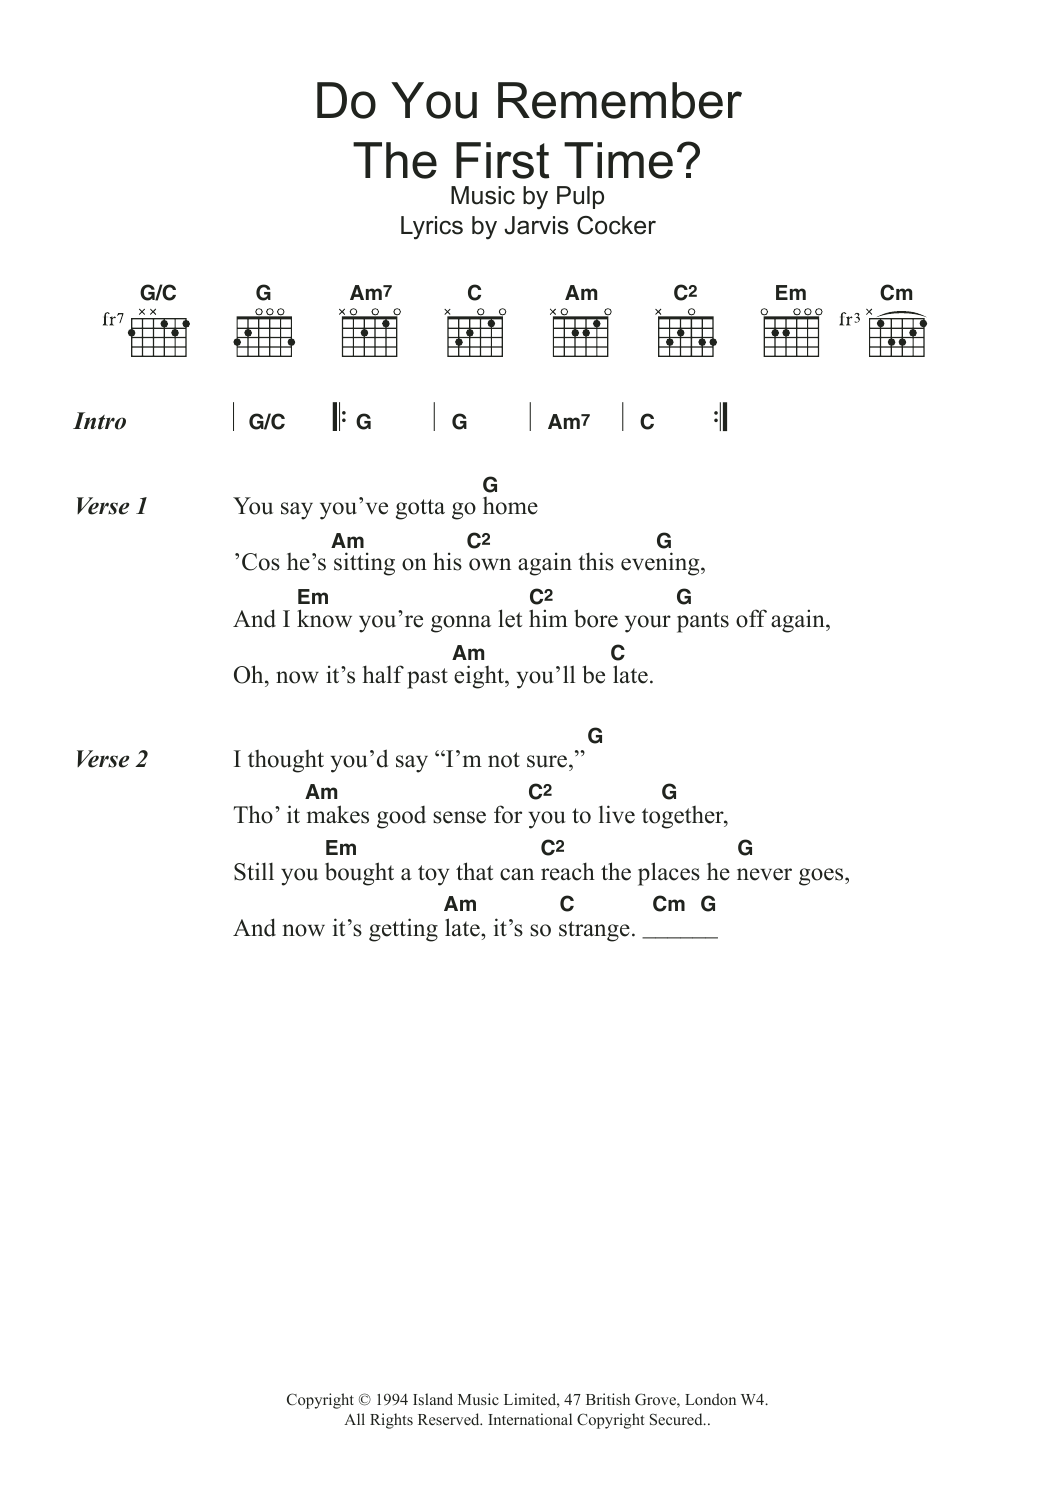 Do You Remember The First Time? Sheet Music